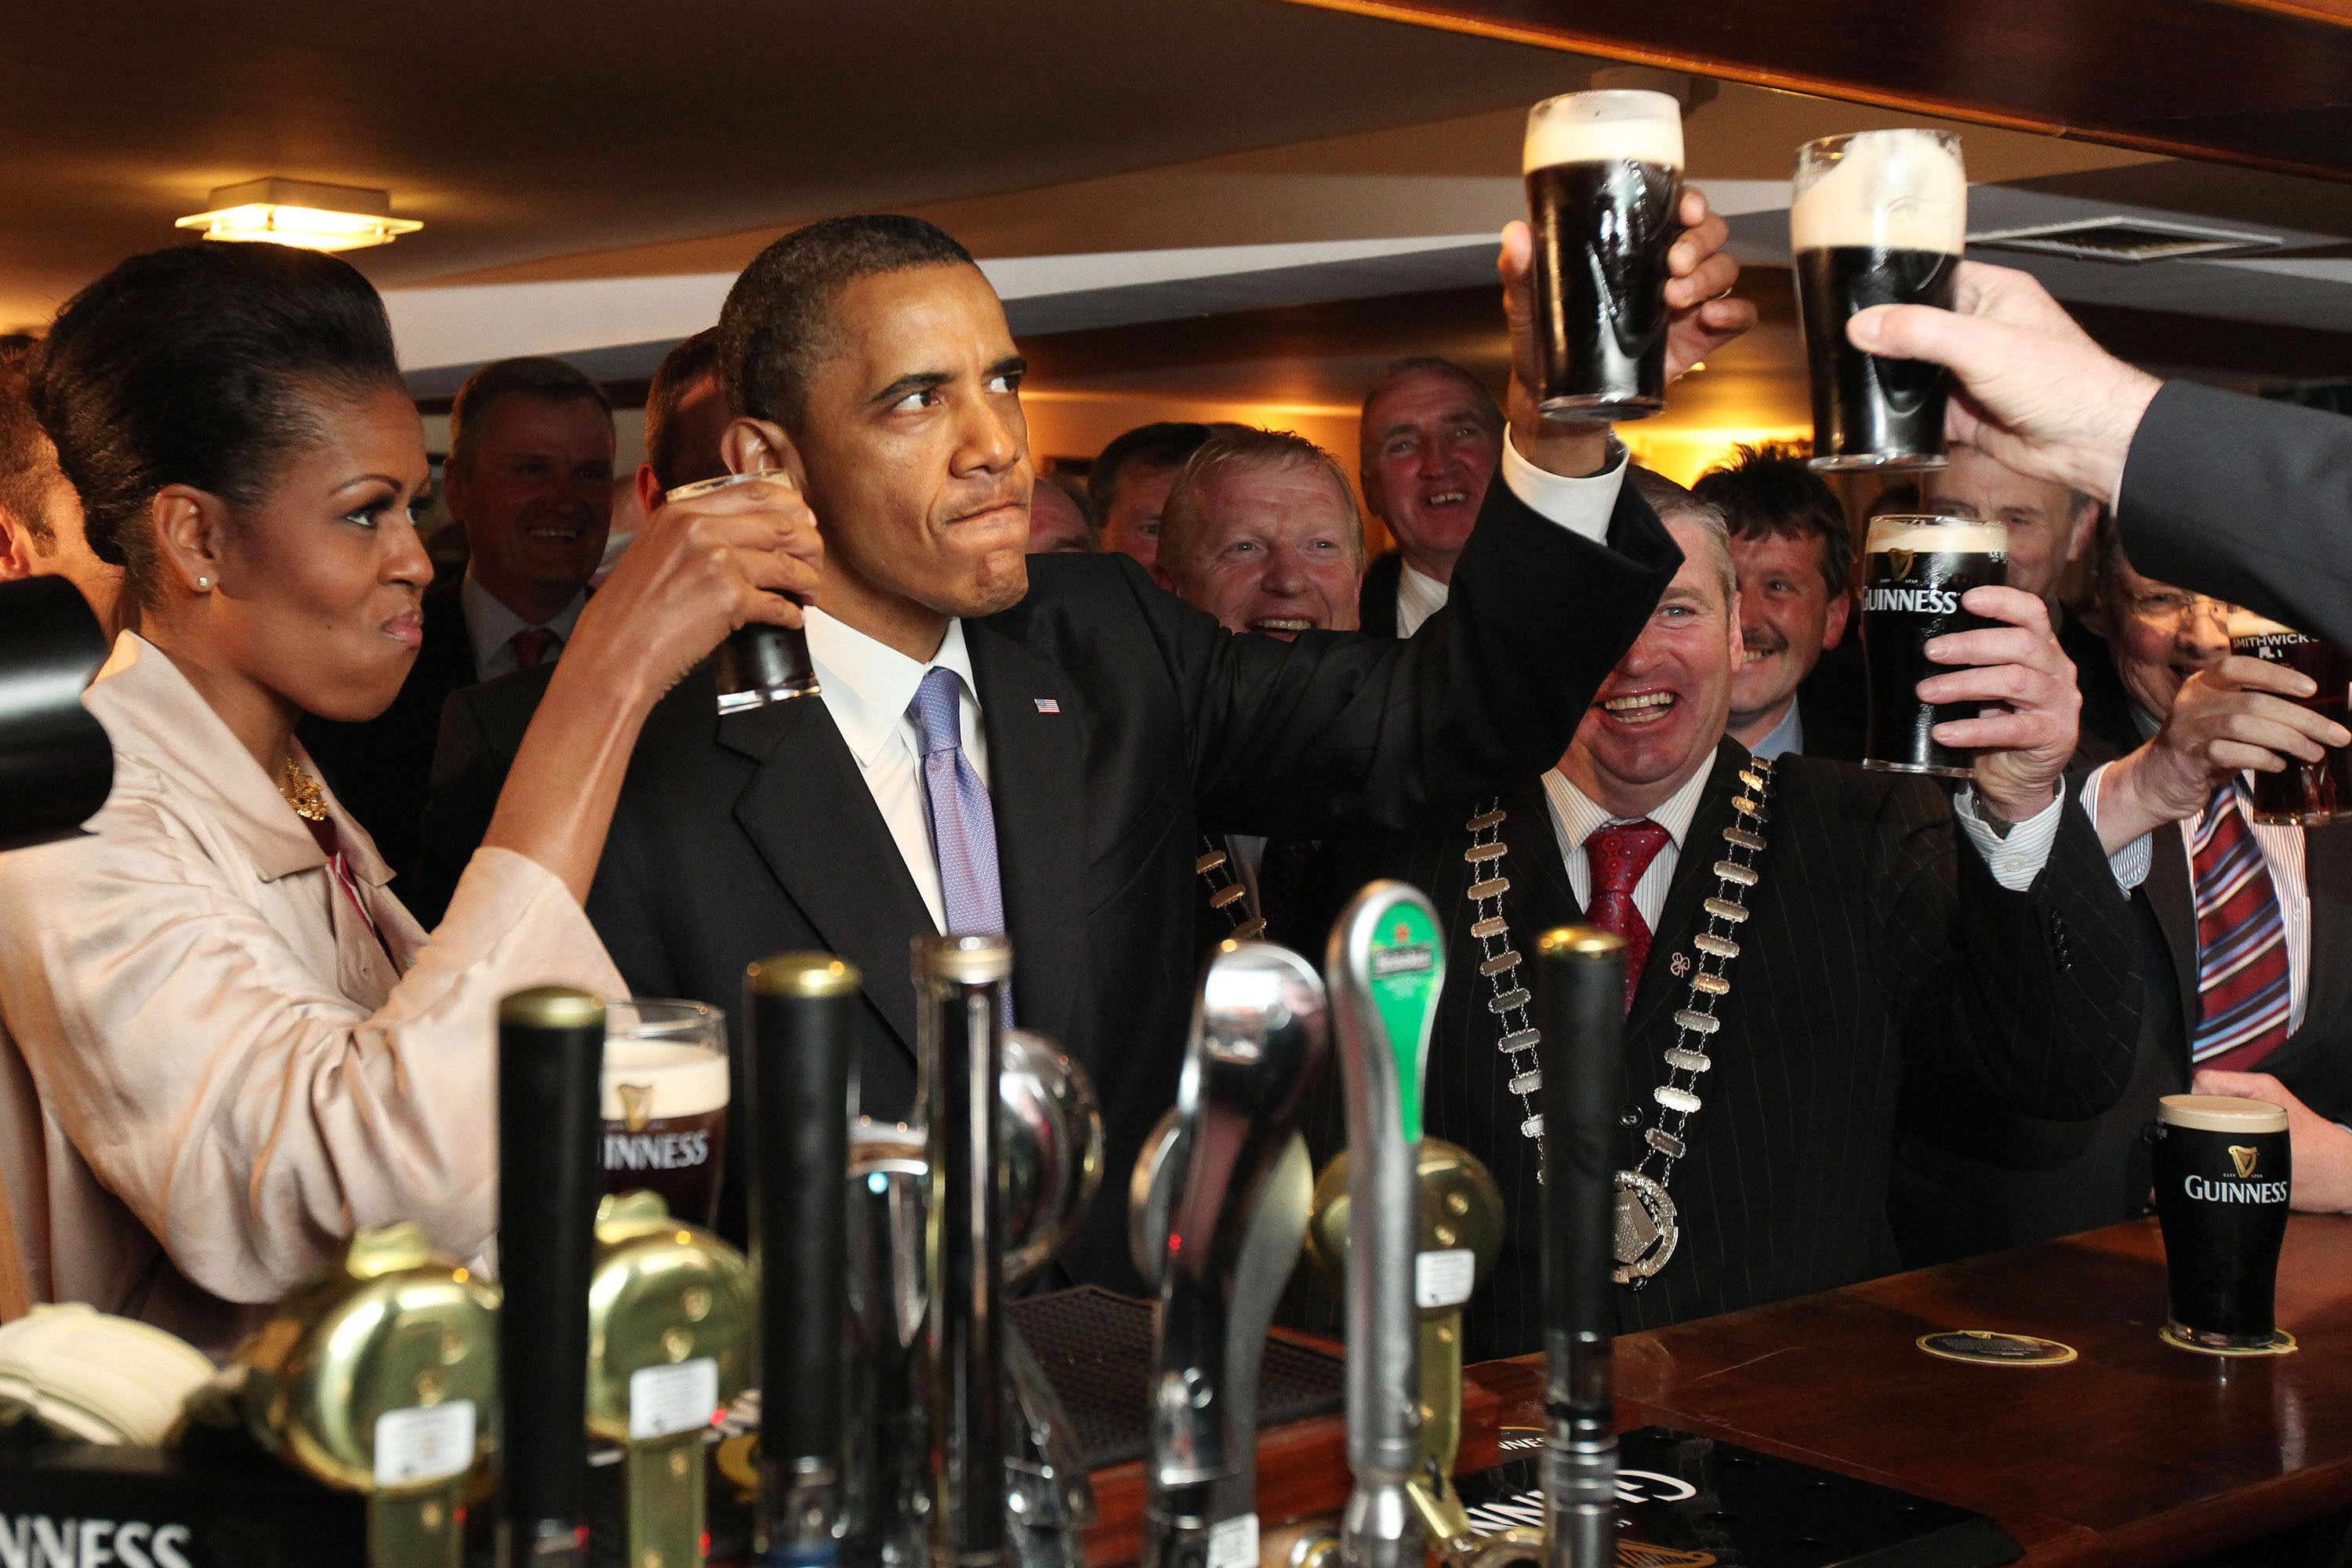 Obama downs a pint of guinness ending long presidential draught